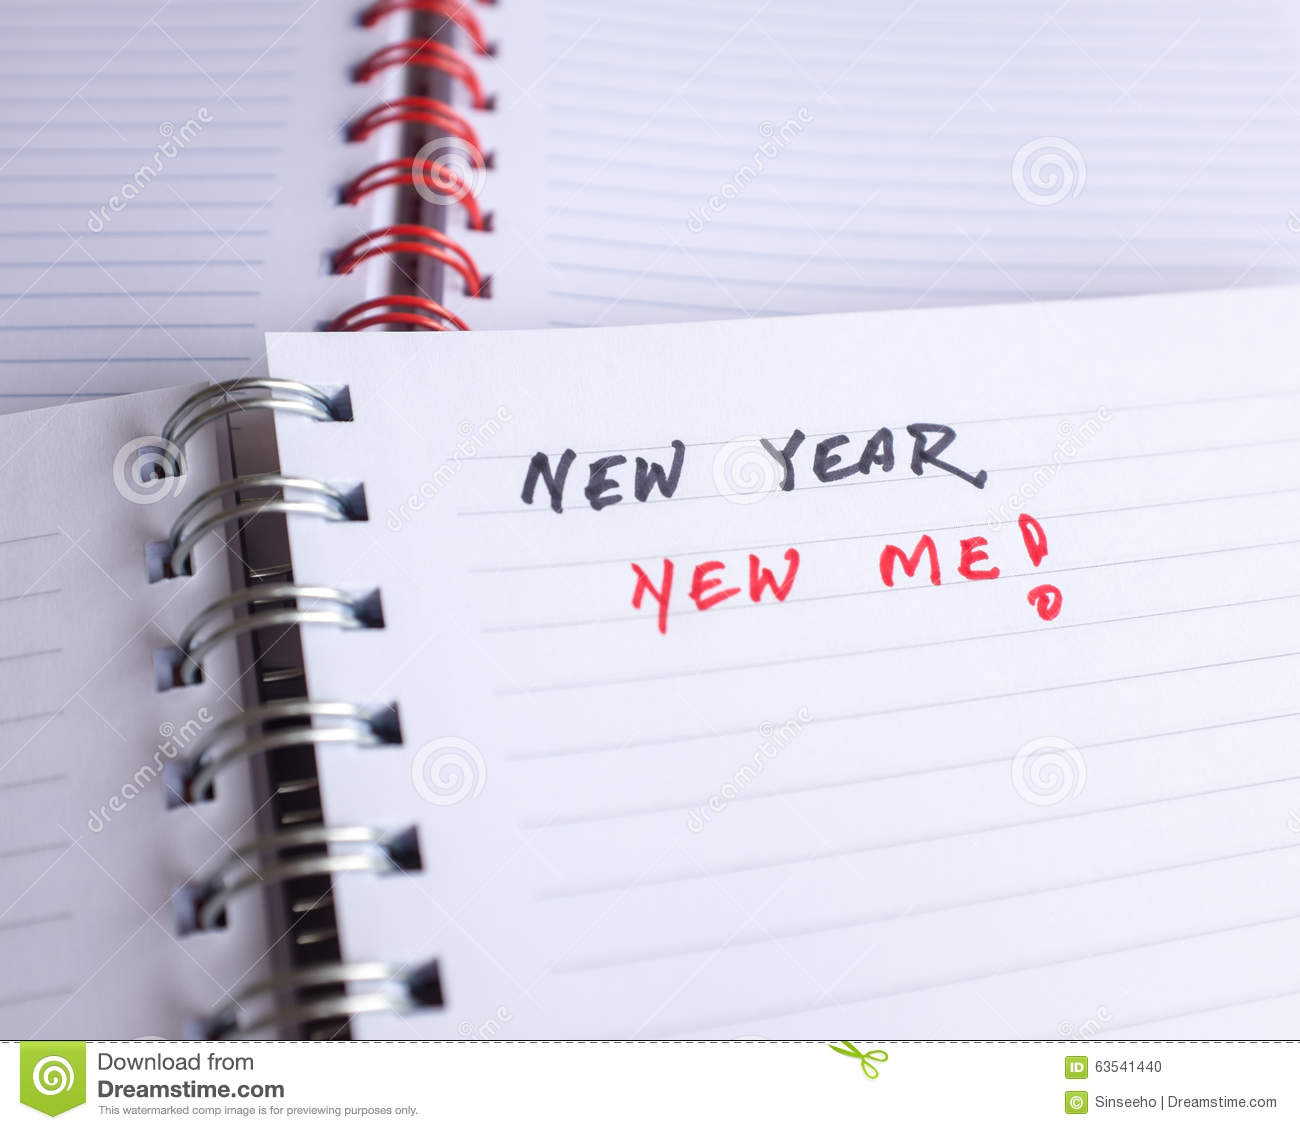 Start Thinking Of New Year Resolutions Stock Photo - Image of ...